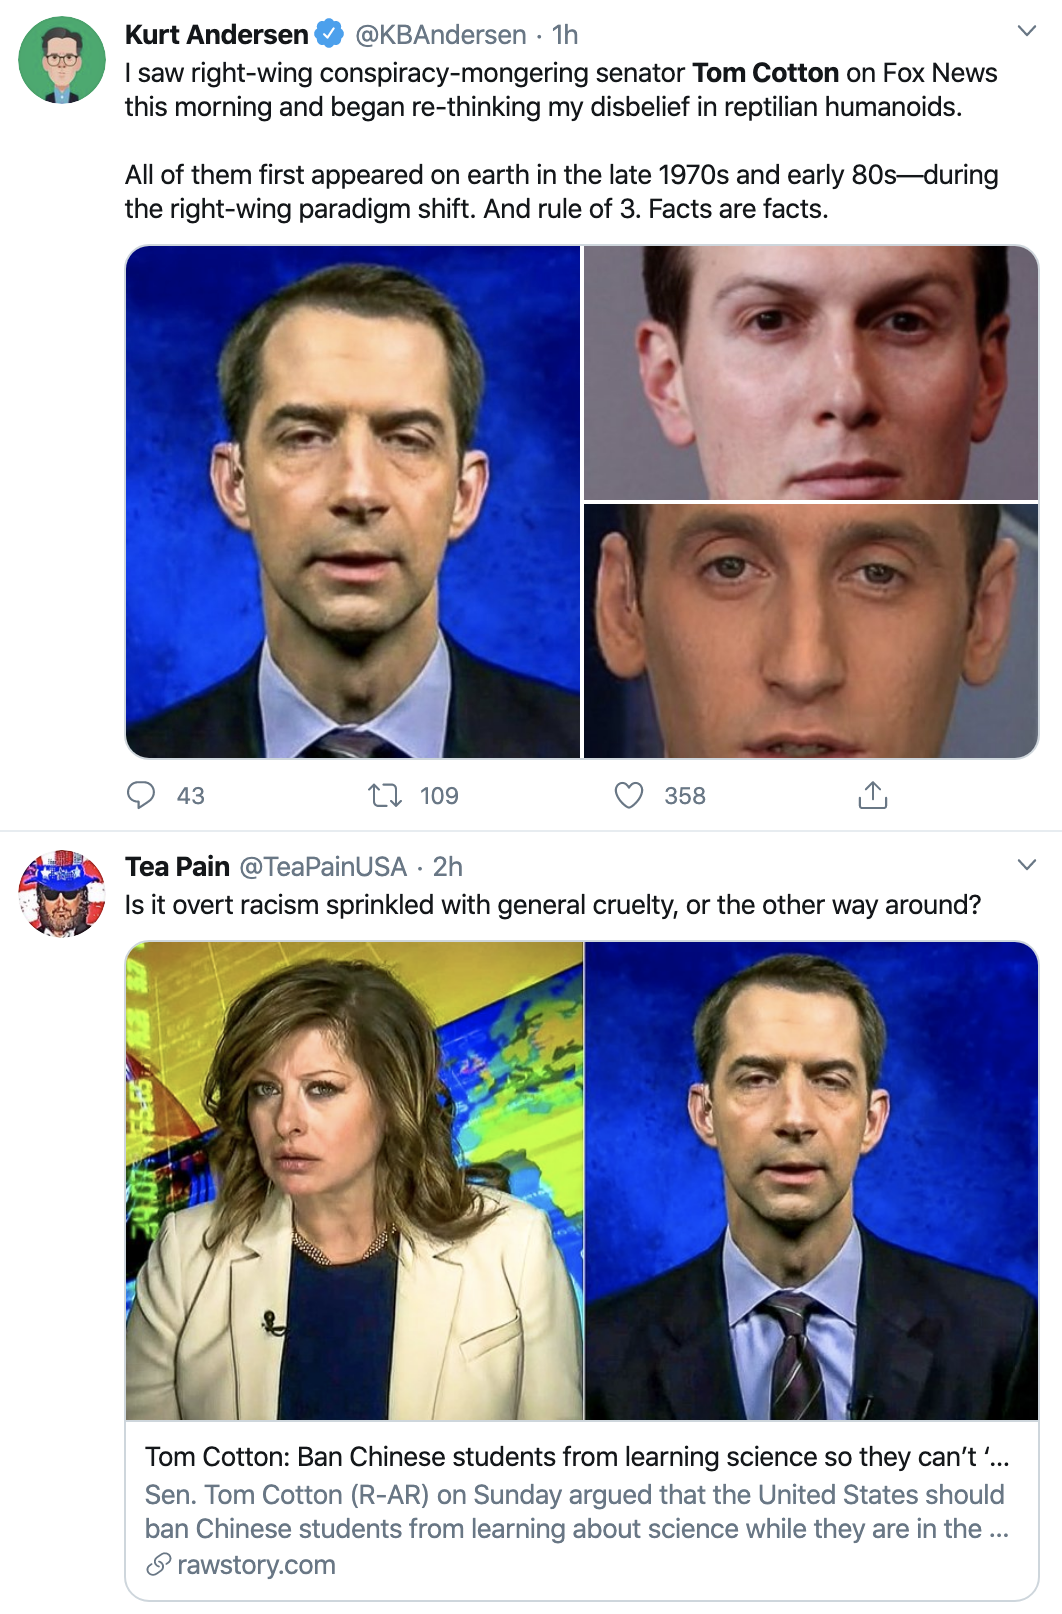 Screen-Shot-2020-04-26-at-12.41.52-PM Tom Cotton's Sunday TV Appearance Goes Very Wrong Economy Featured Healthcare Politics Top Stories